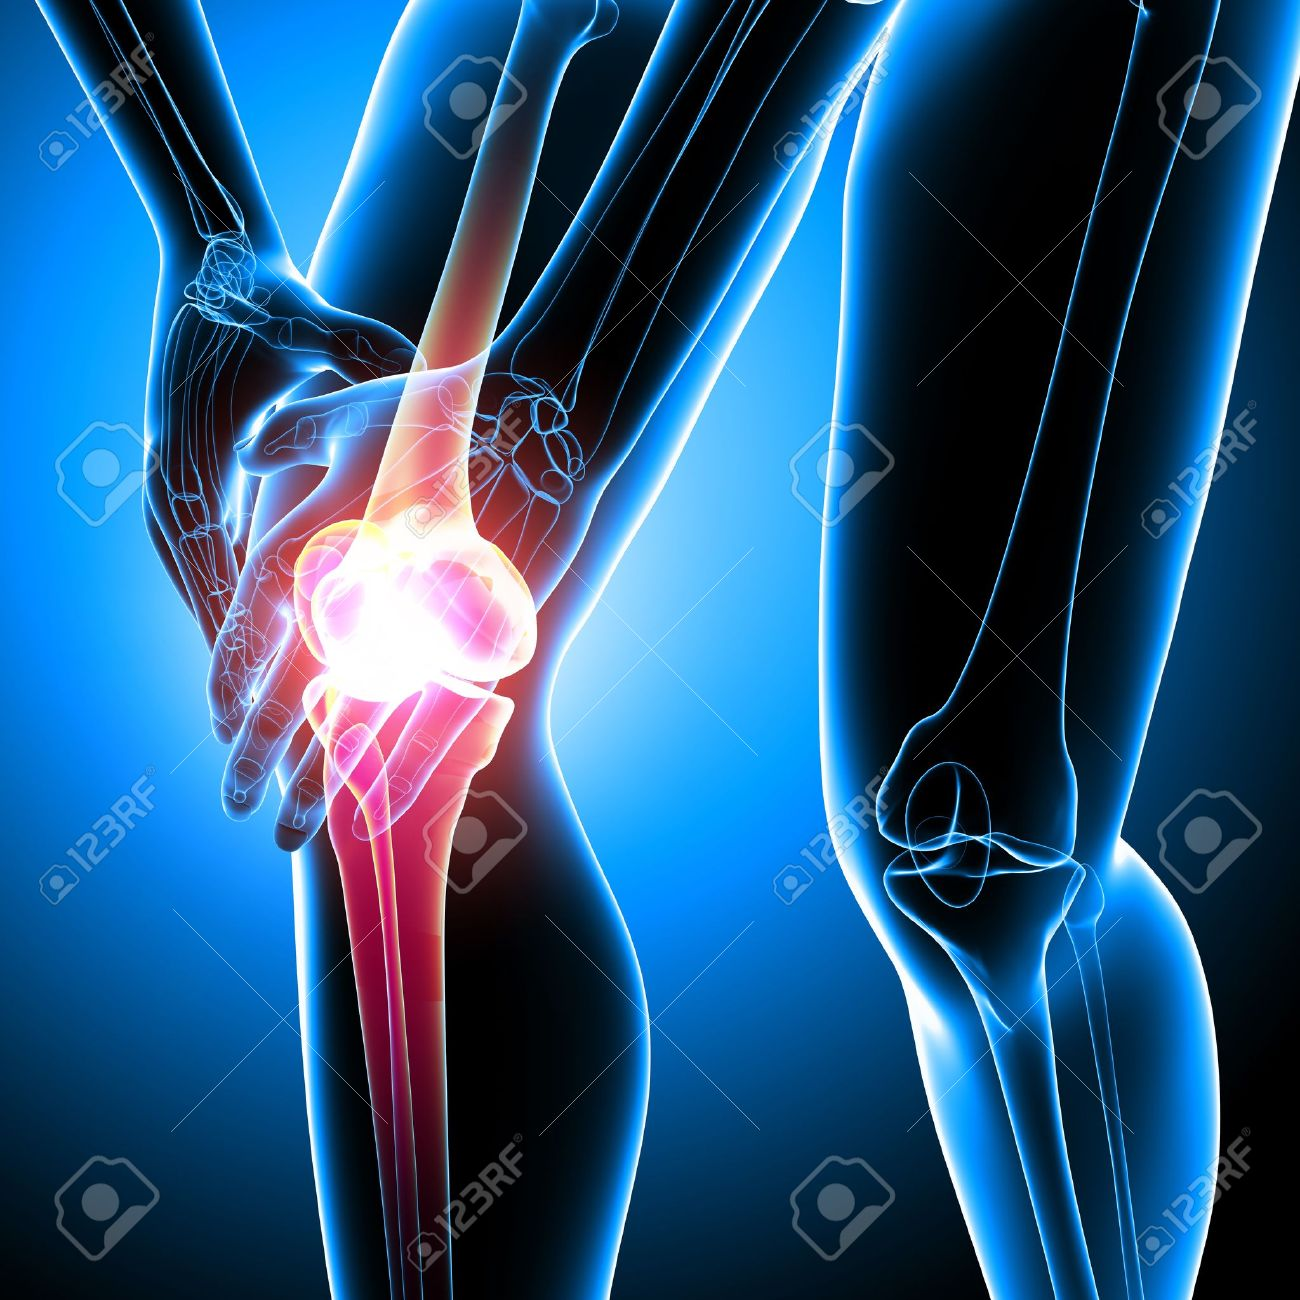 Anatomy Of Female Knee Pain Stock Photo, Picture And Royalty Free ...